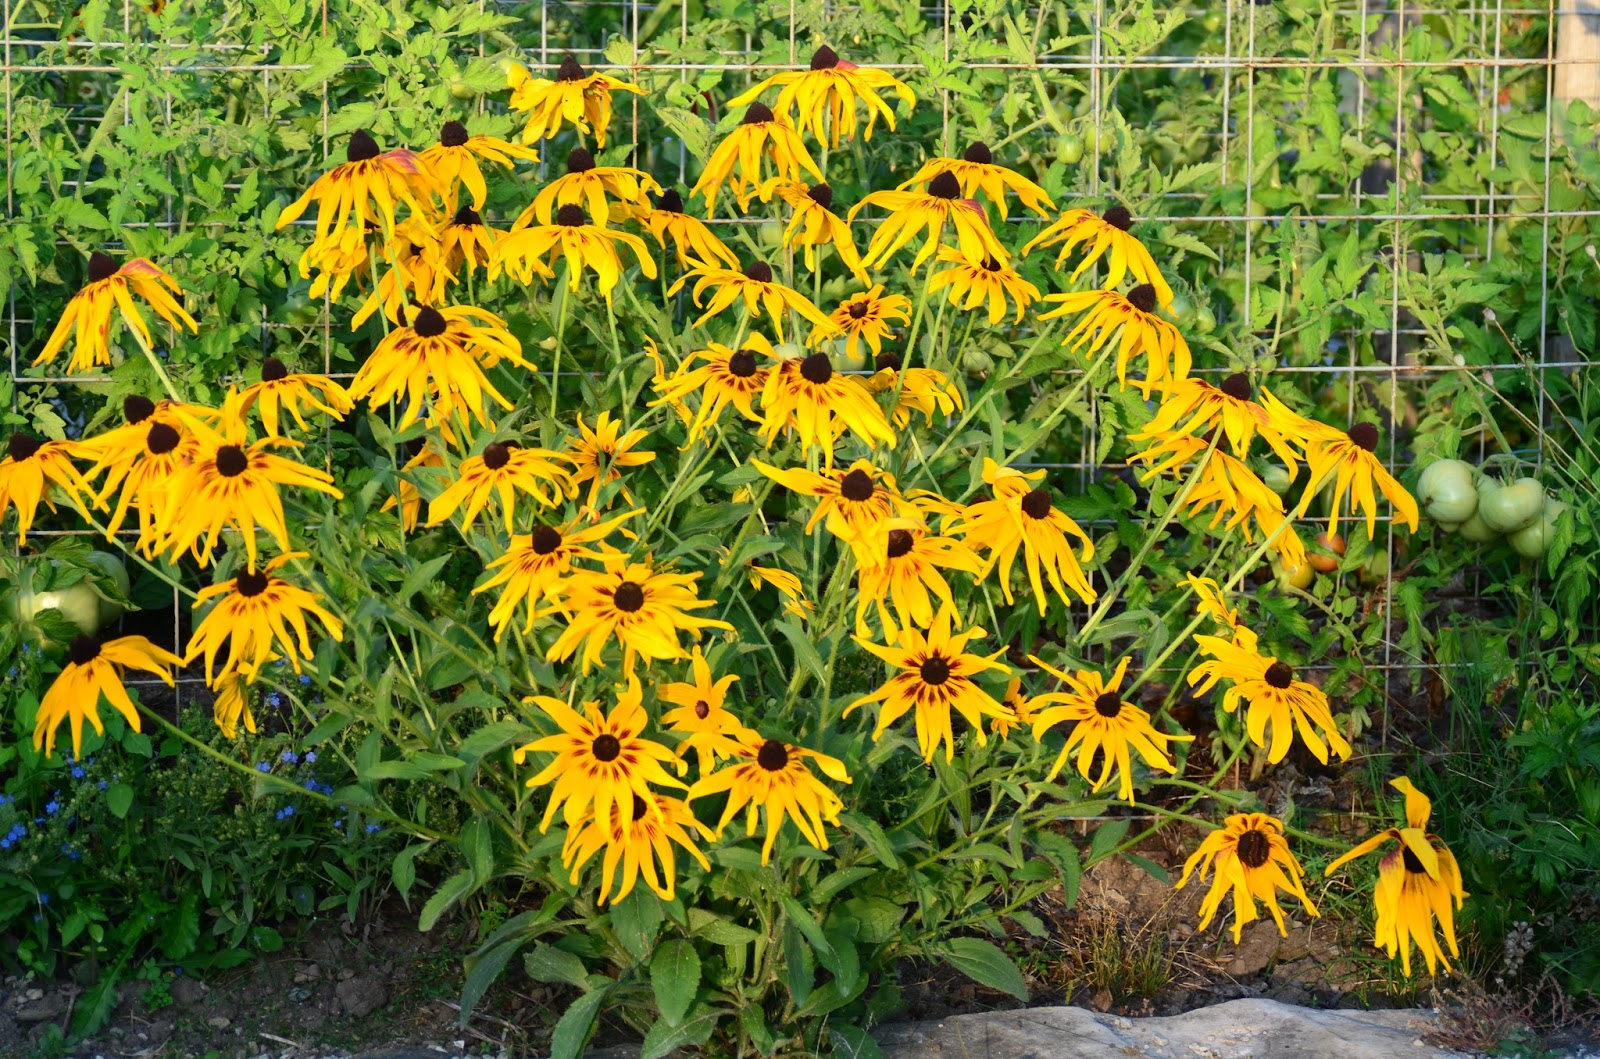 Roche fleurie garden gloriosa daisy yelloworange daisy about two feet tall 60 cm and biennial its flowers however are quite unpredictable and there is a great deal of diversity izmirmasajfo